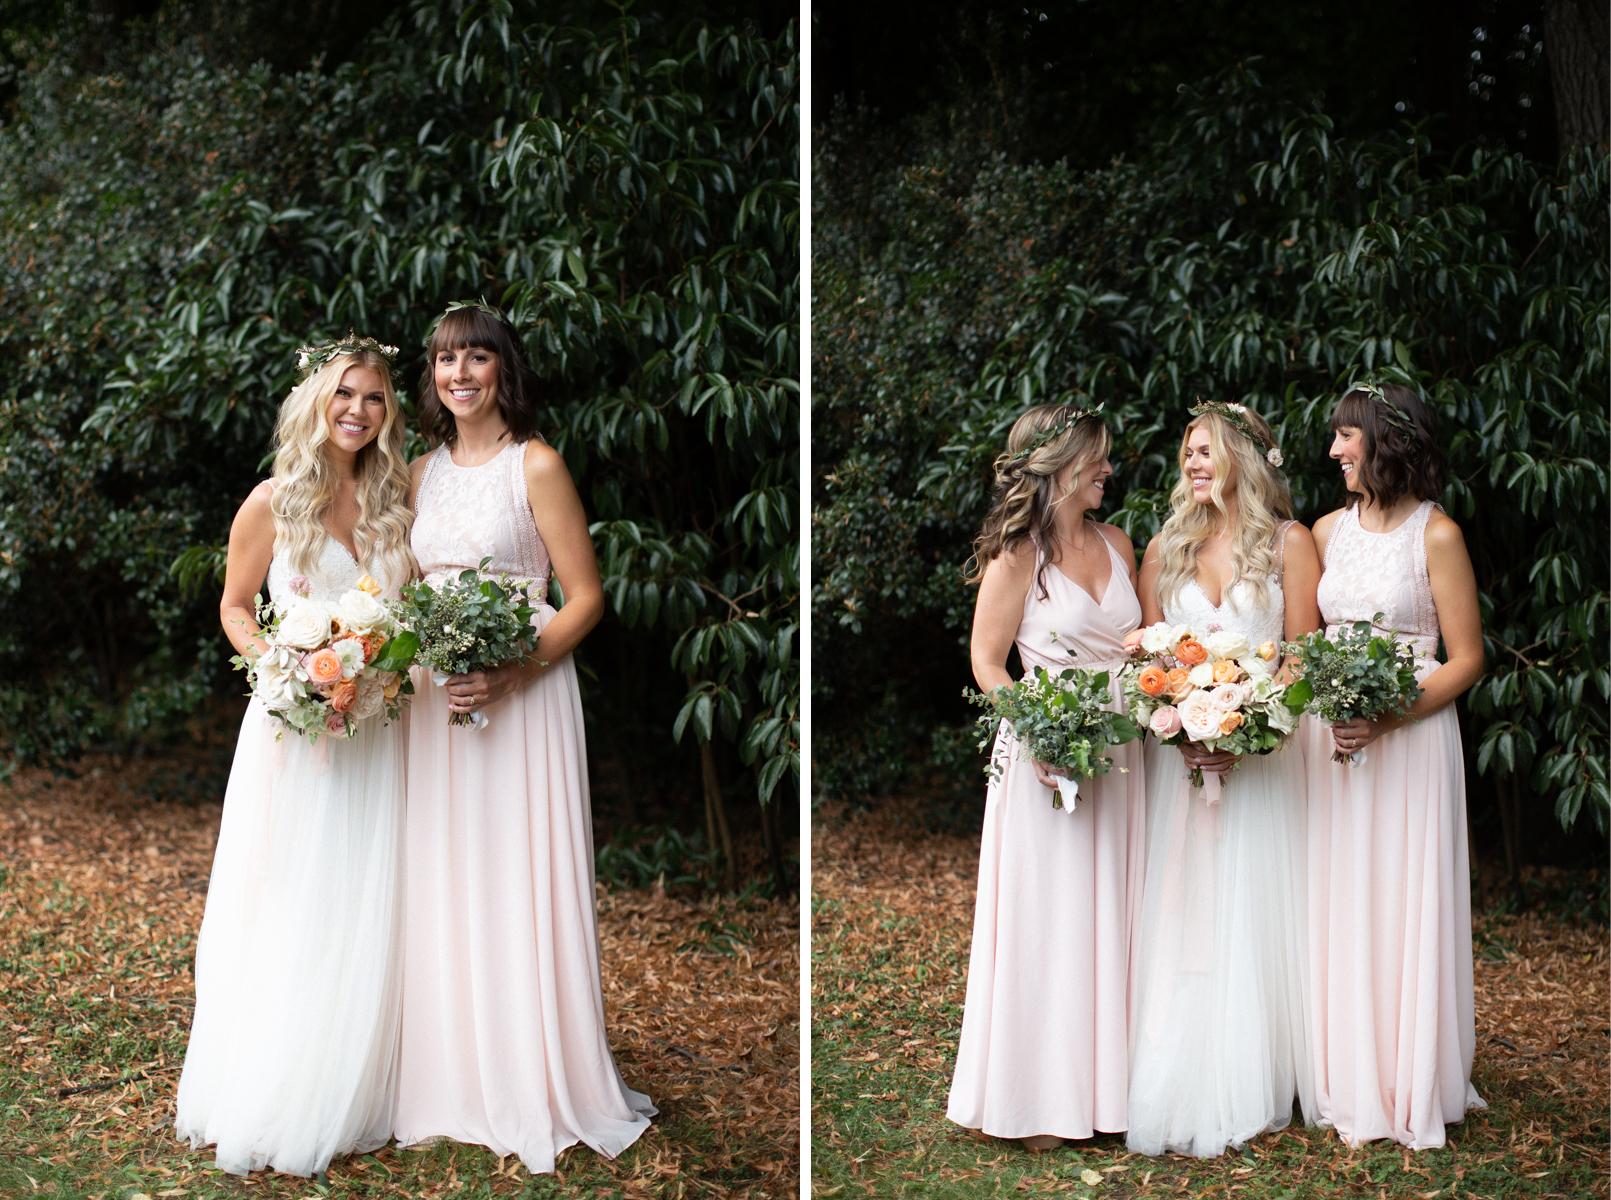 Jessica + Scott_Olivia_Ashton_Photography-40.jpg